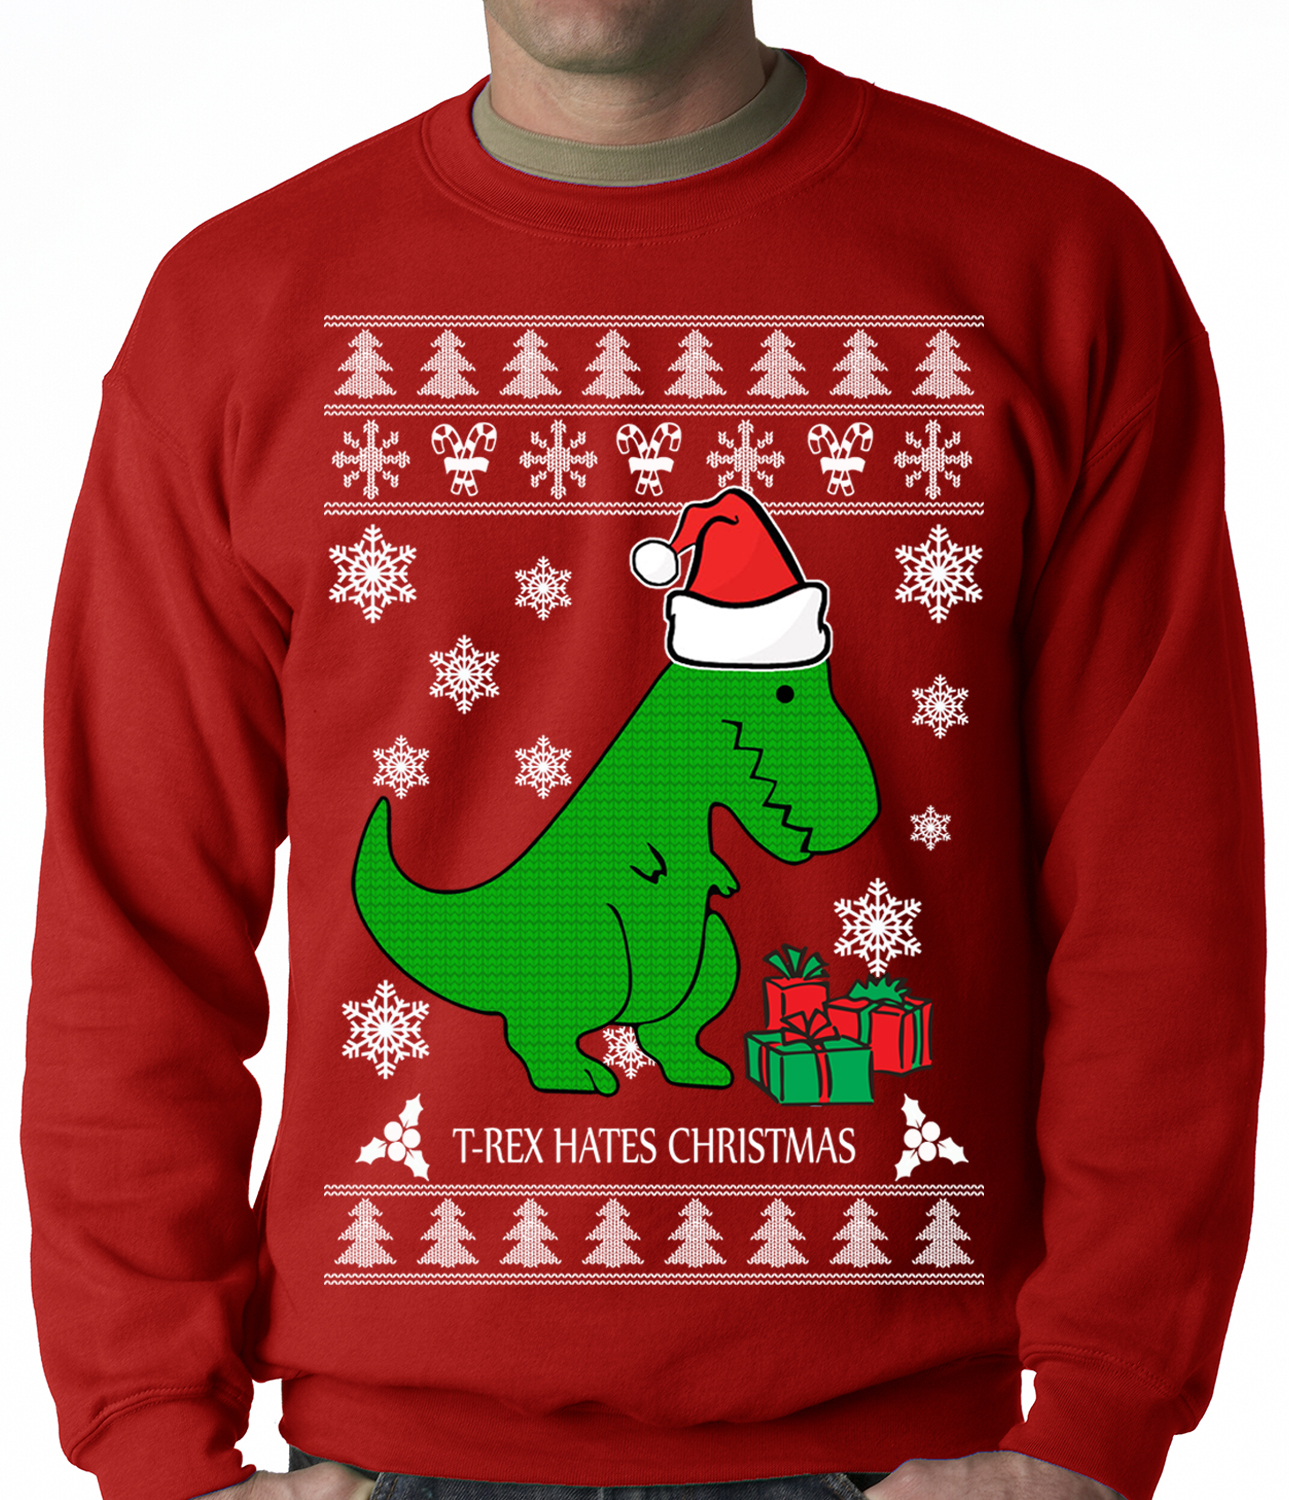 T-Rex Hates Christmas - Ugly Christmas Sweater Adult Crewneck ...